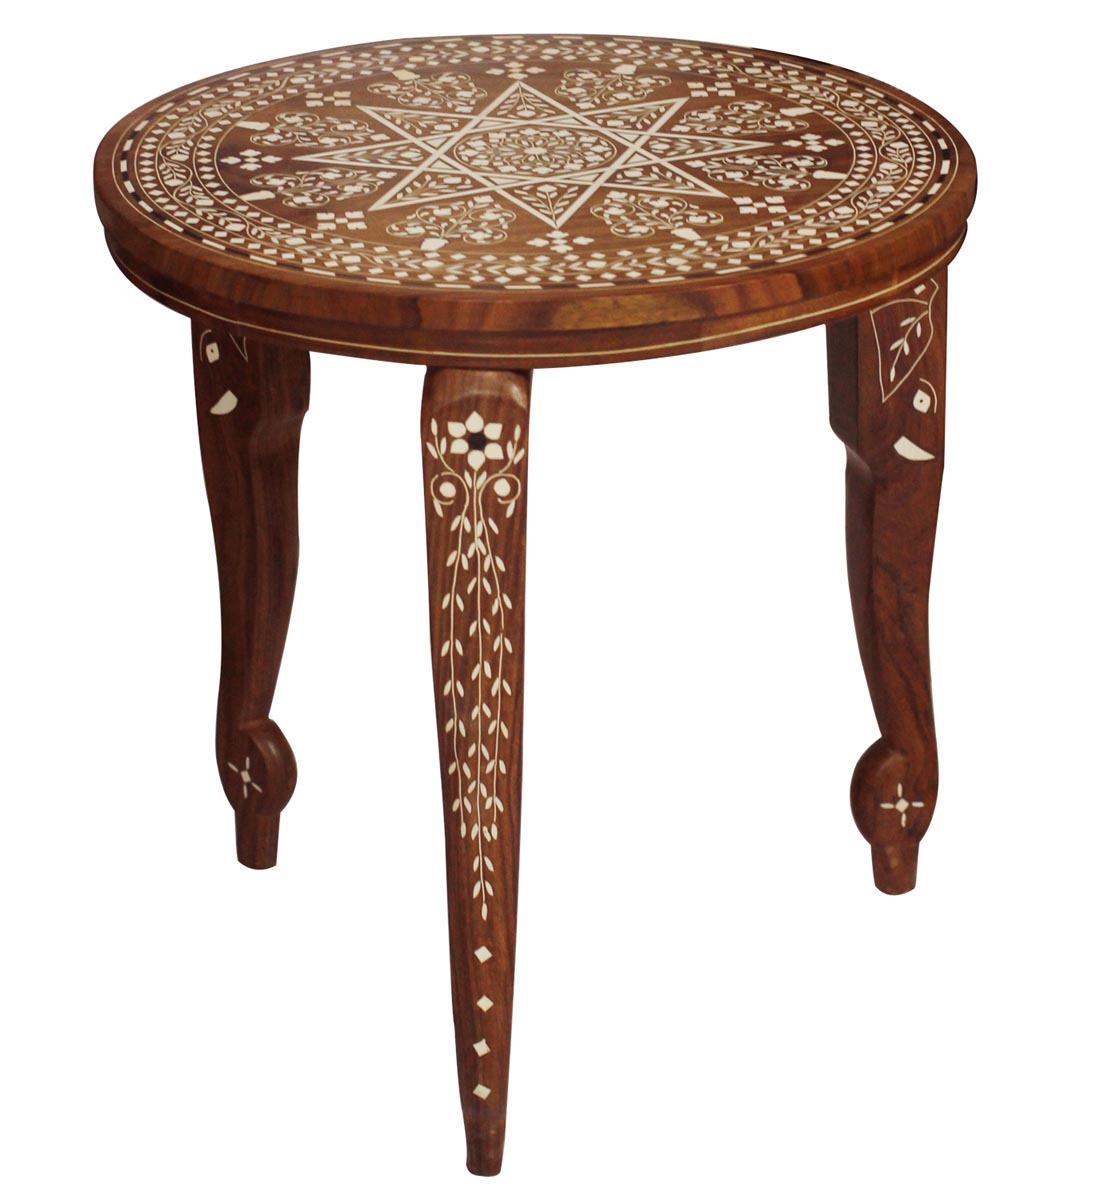 bulk source hand carved decorative wooden accent table with round top detachable wire side jcpenney couches west elm floor pillow counter lamp long cabinet industrial look end